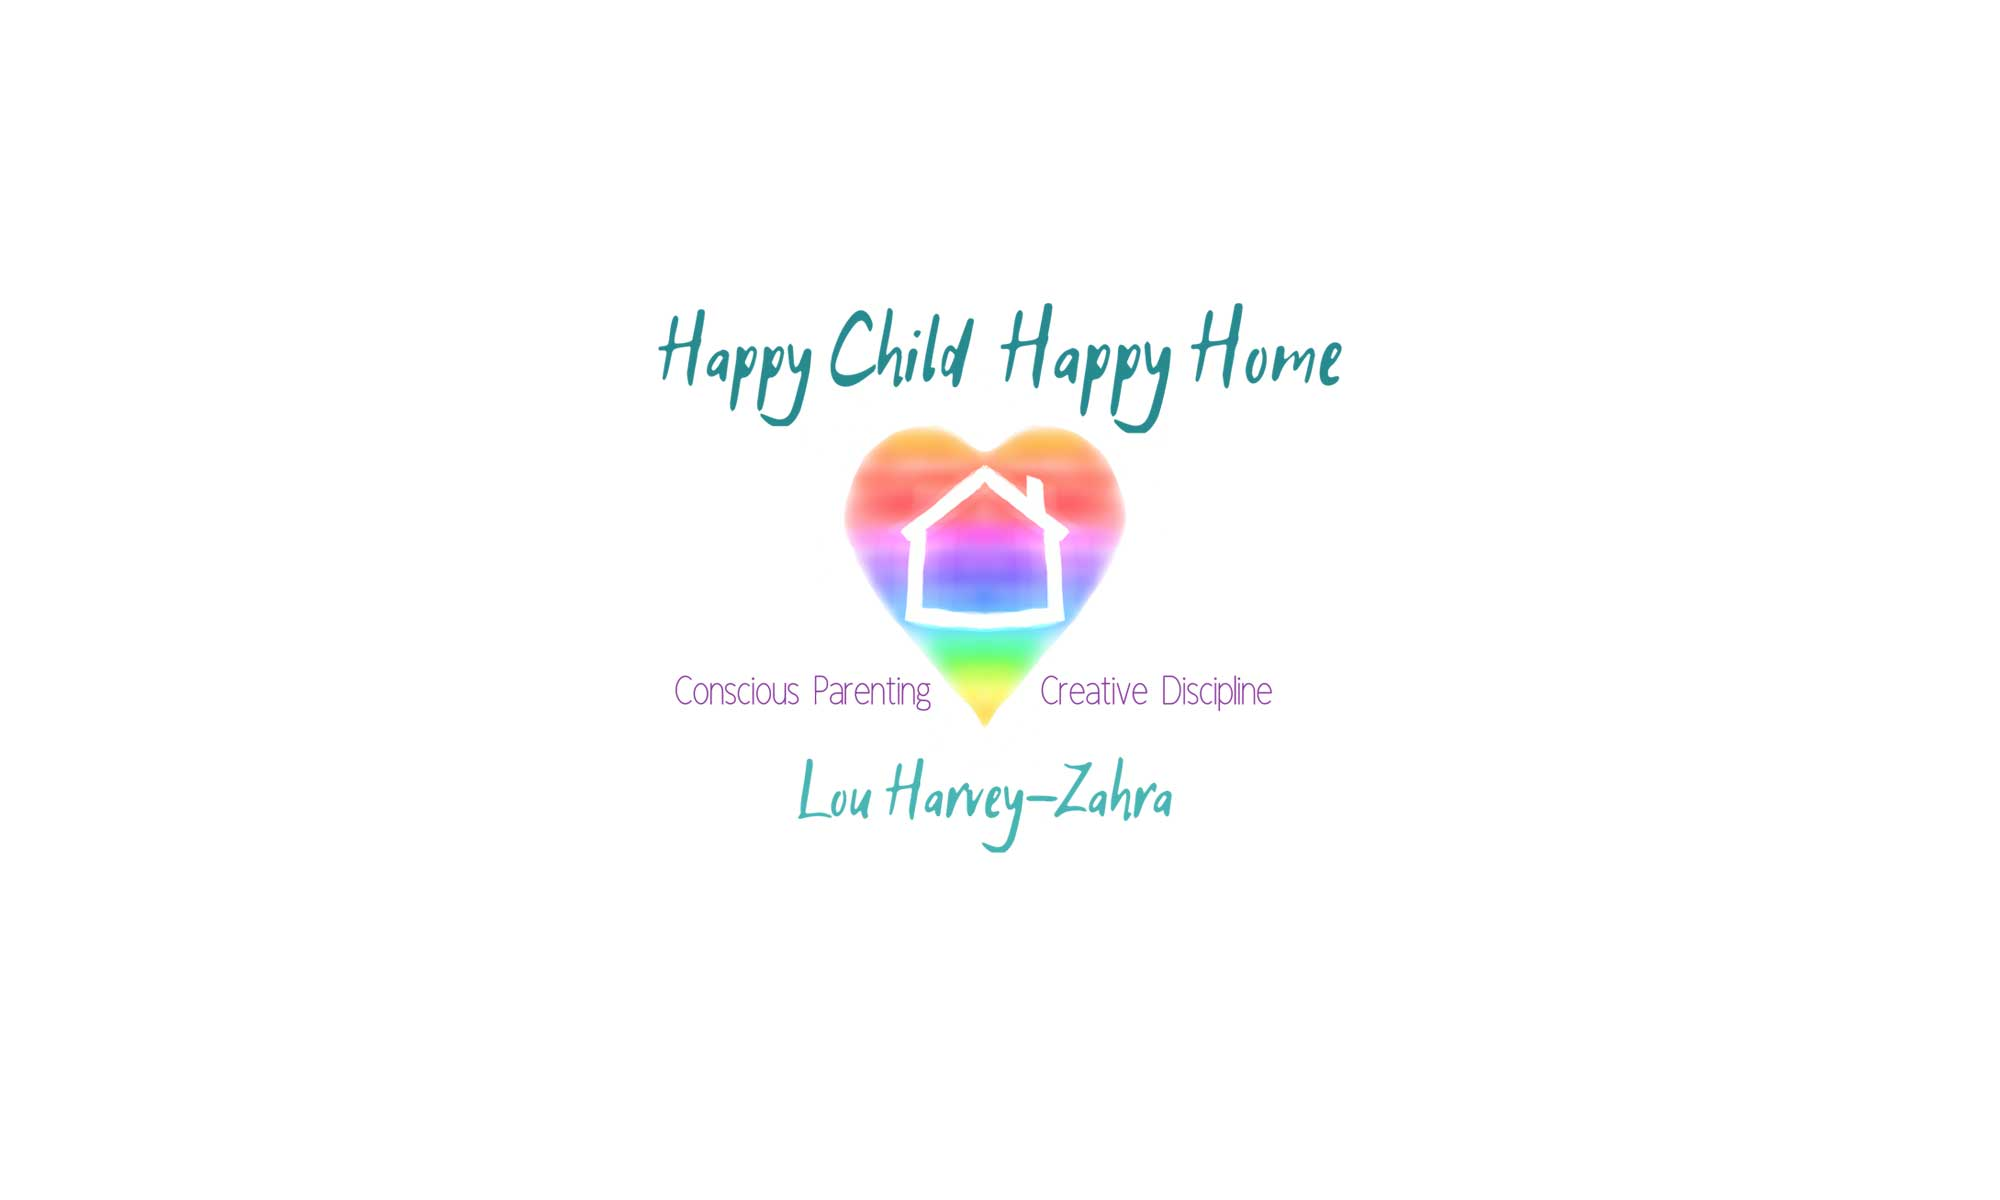 Happy Child, Happy Home – Conscious Parenting and Creative